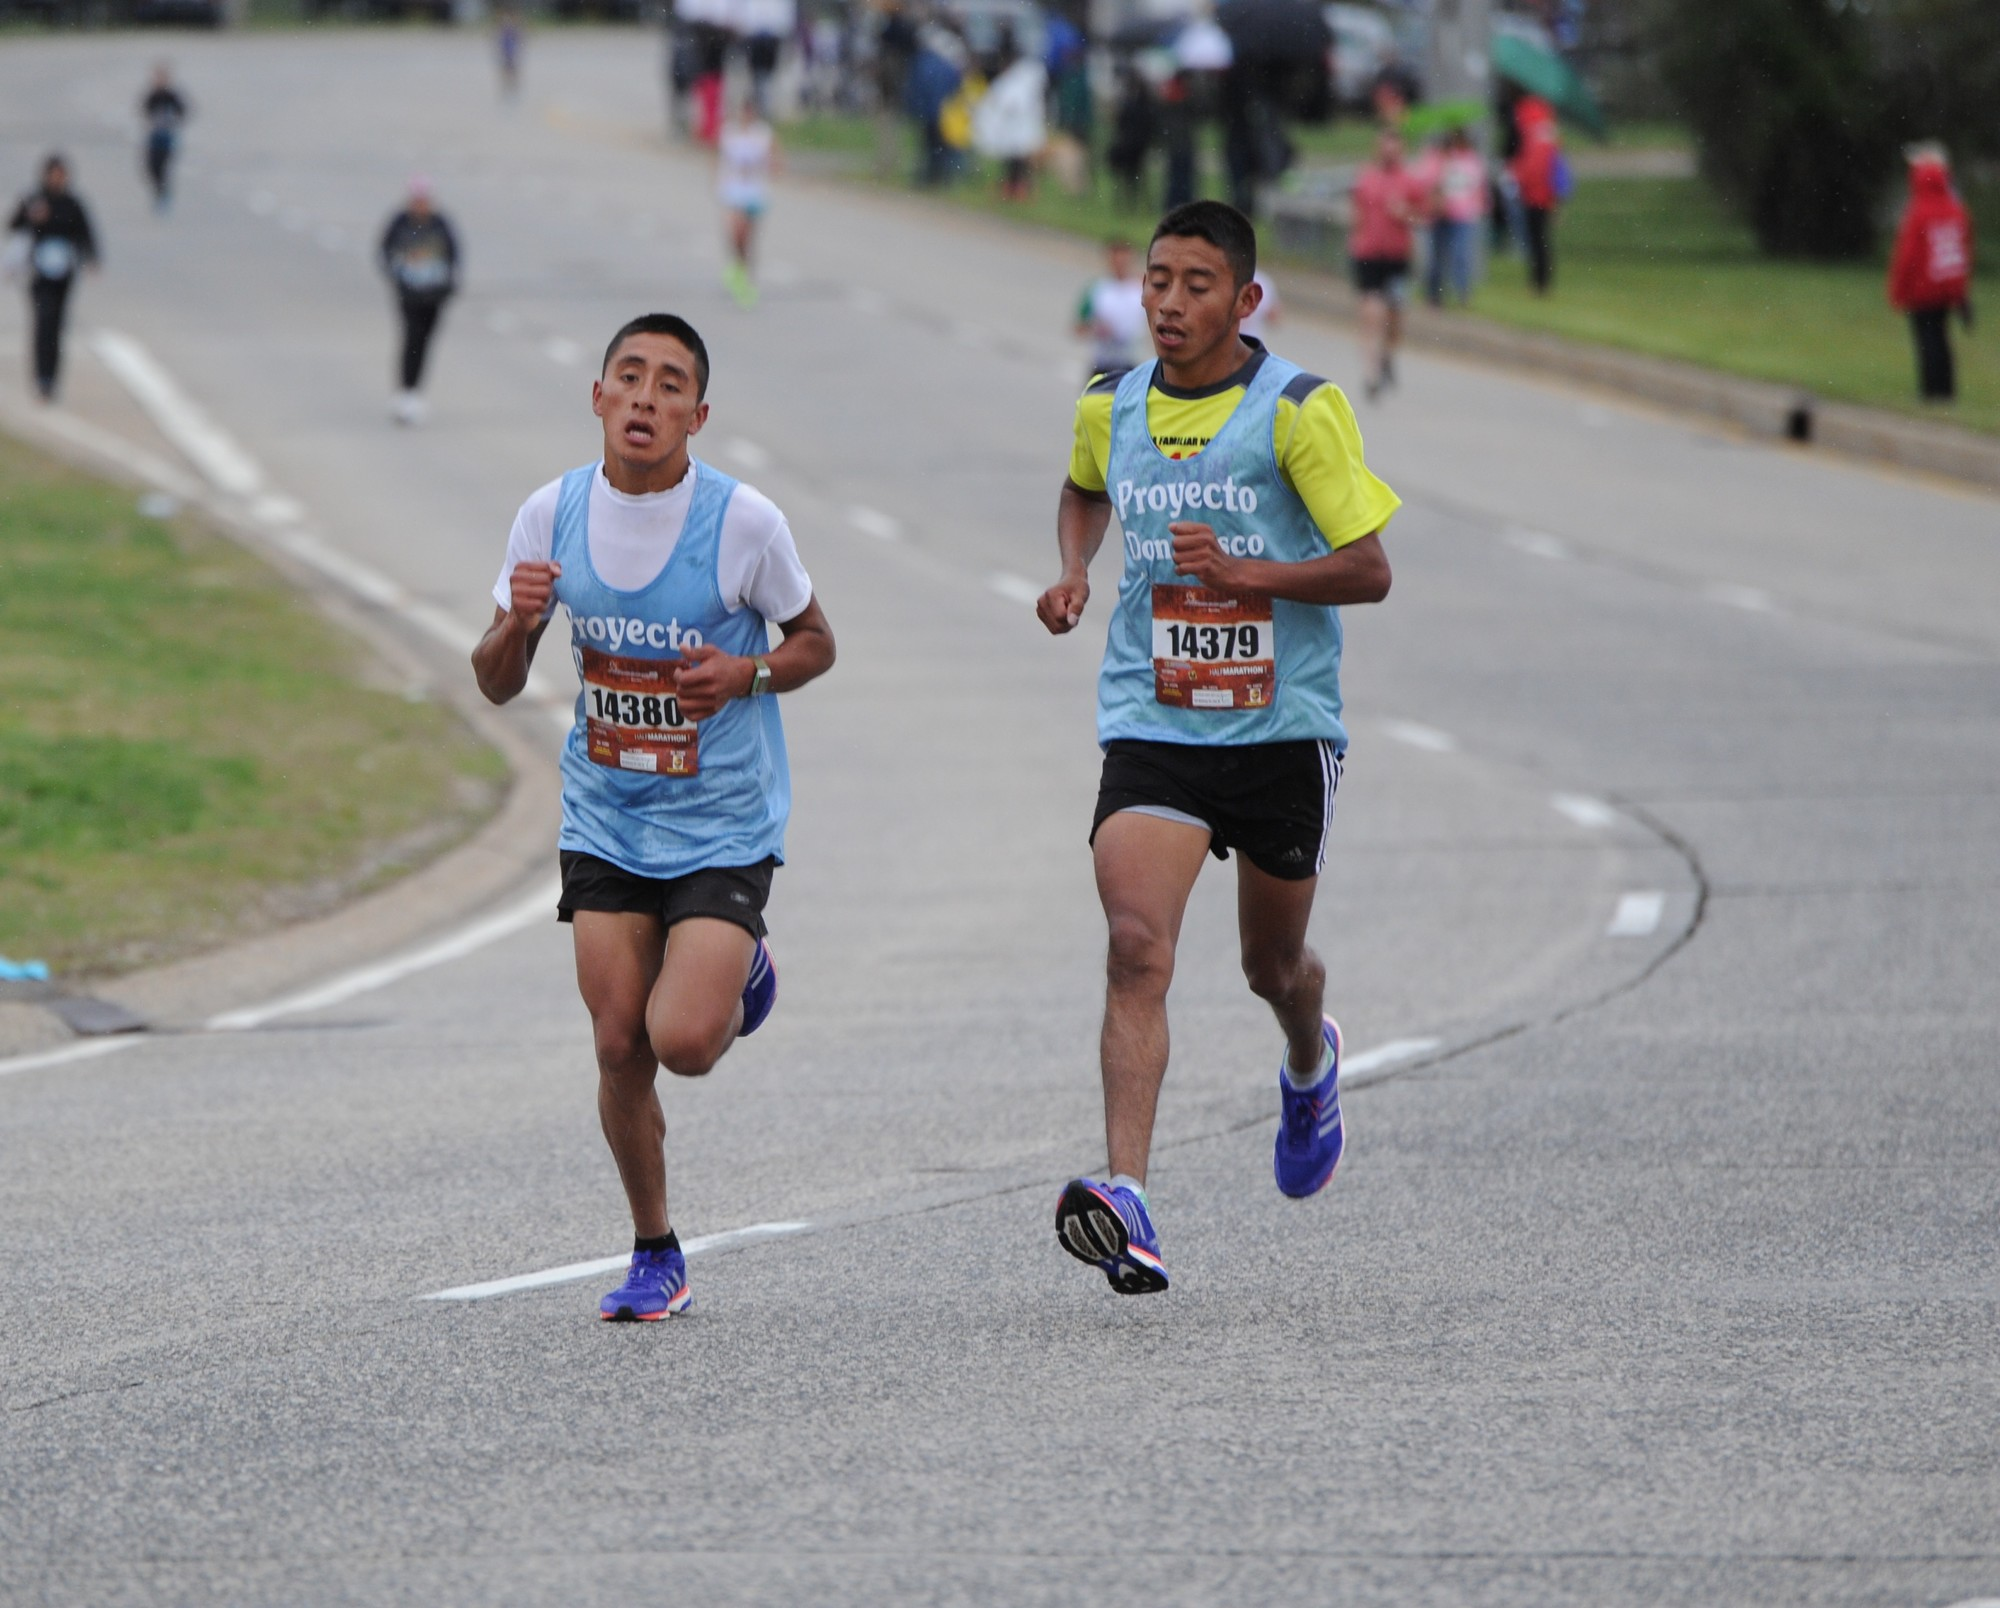 Brothers Wilson, left, and Erick Chavez Chox raced toward the finish line during last Sunday's half-marathon. Erick won the race, and Wilson finished second.